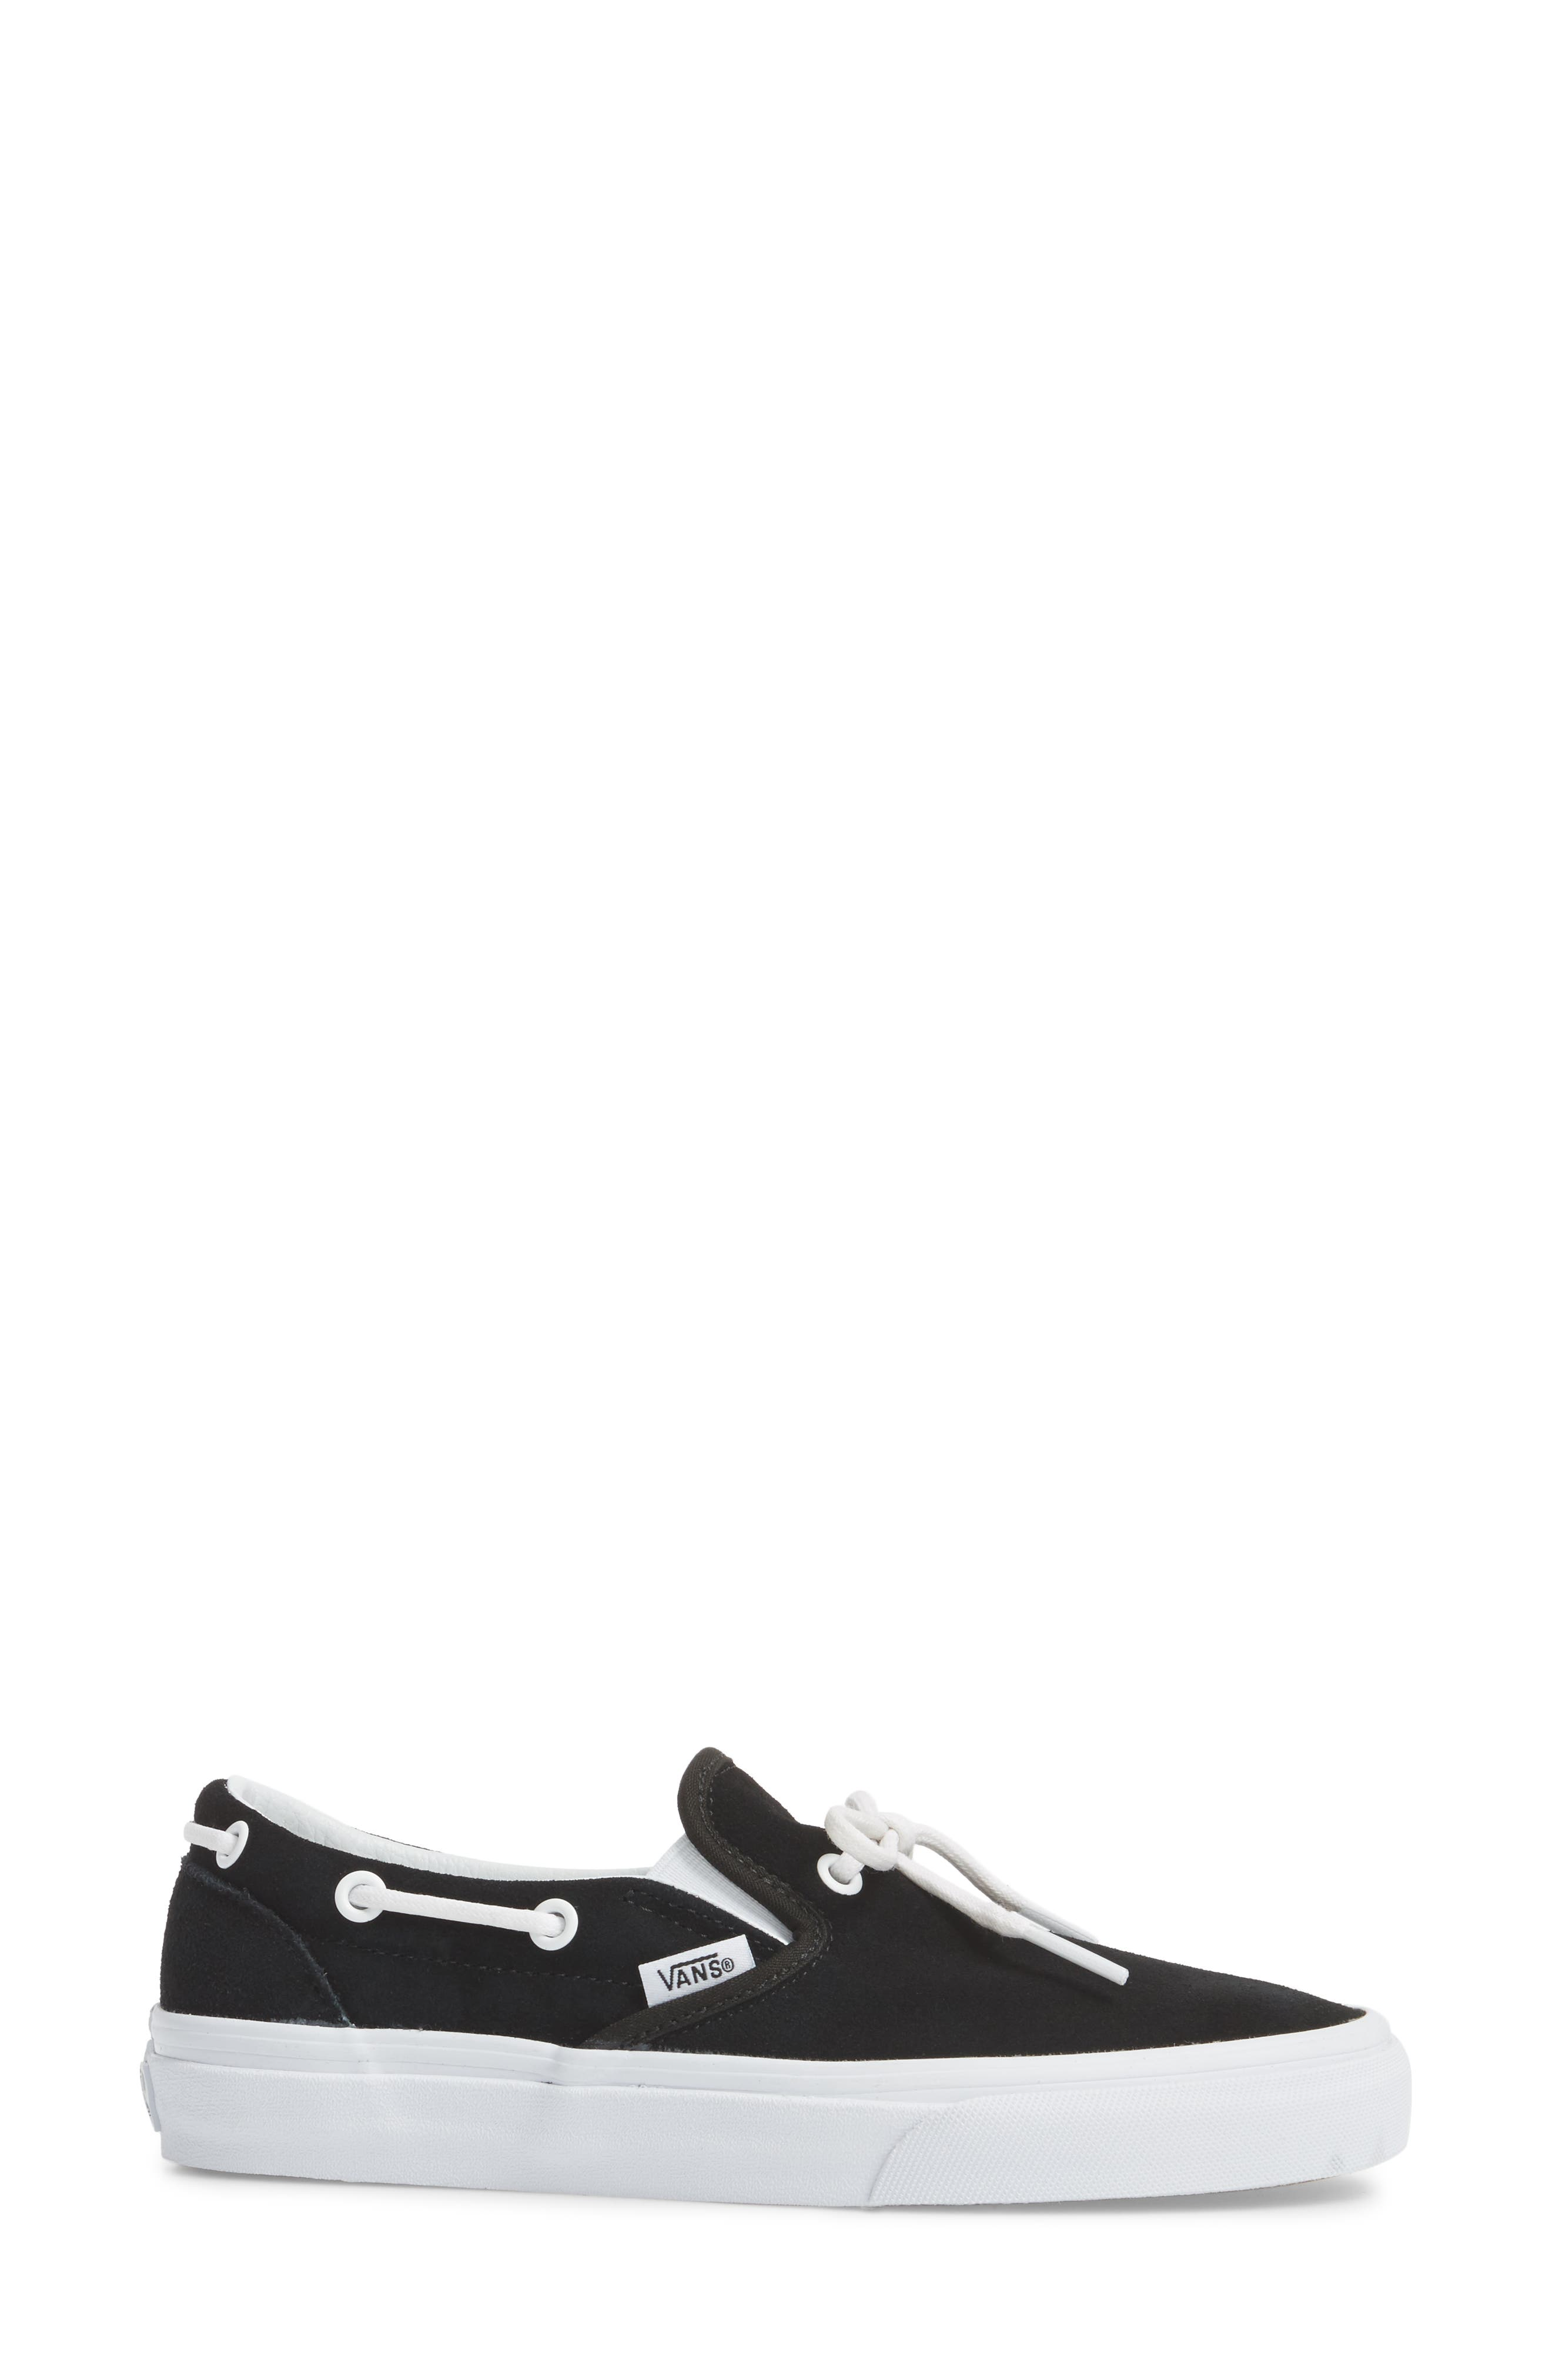 UA Lacey 72 Slip-On Boat Sneaker,                             Alternate thumbnail 3, color,                             Black Leather